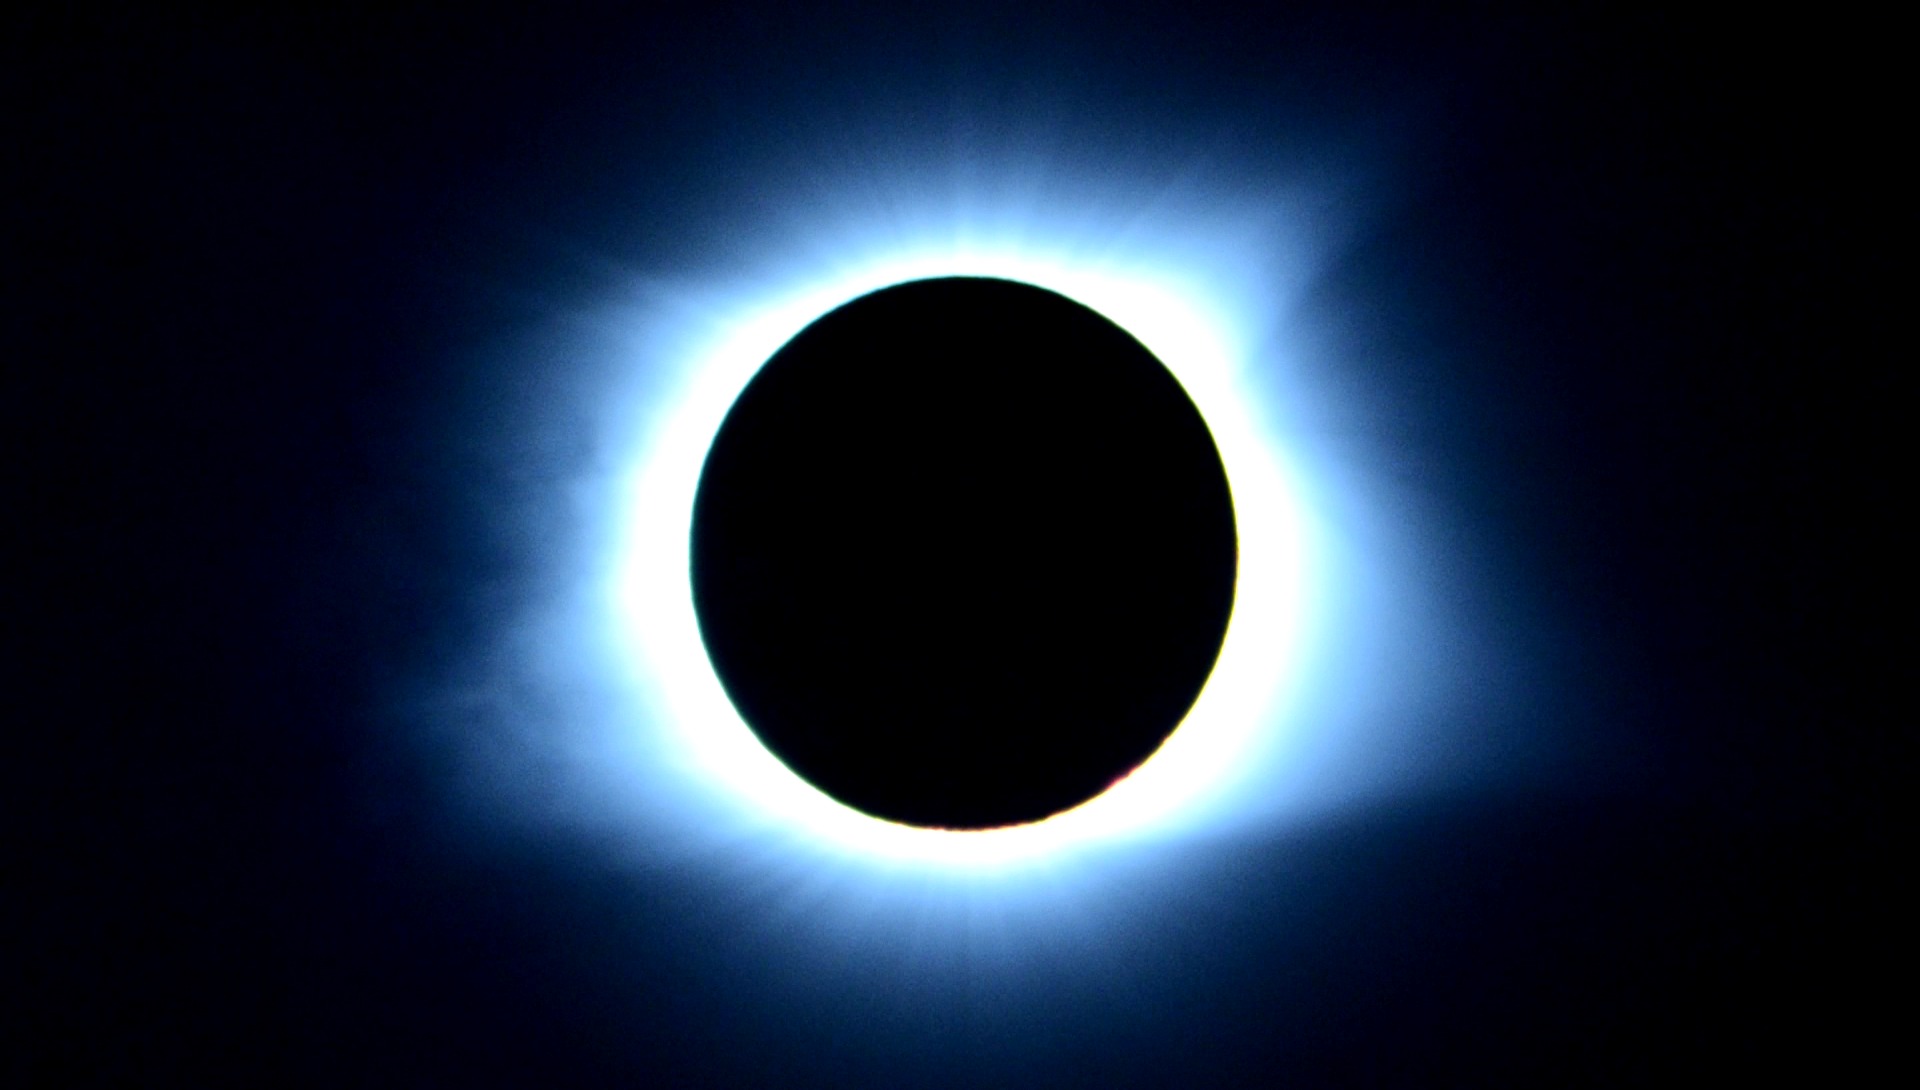 A total solar eclipse takes place over Nashville, TN on August 21, 2017.